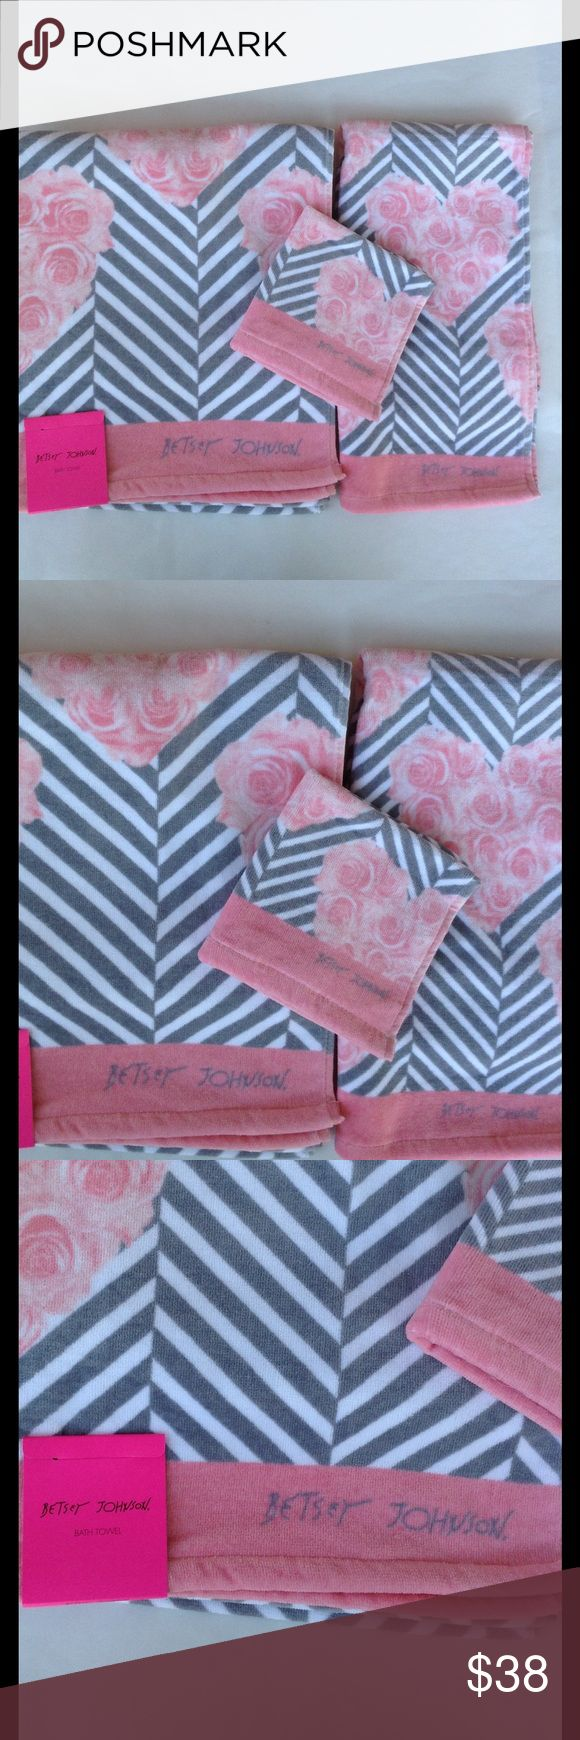 New Betsey Johnson 3 towel set hearts & stripes Brand-new Betsey Johnson towels set designed with roses hearts stripes Betsey Johnson logo bath towel washcloth and. Hand towel 100% cotton brand-new with tags's beautiful for Spring and summer please ask any questions Betsey Johnson Other